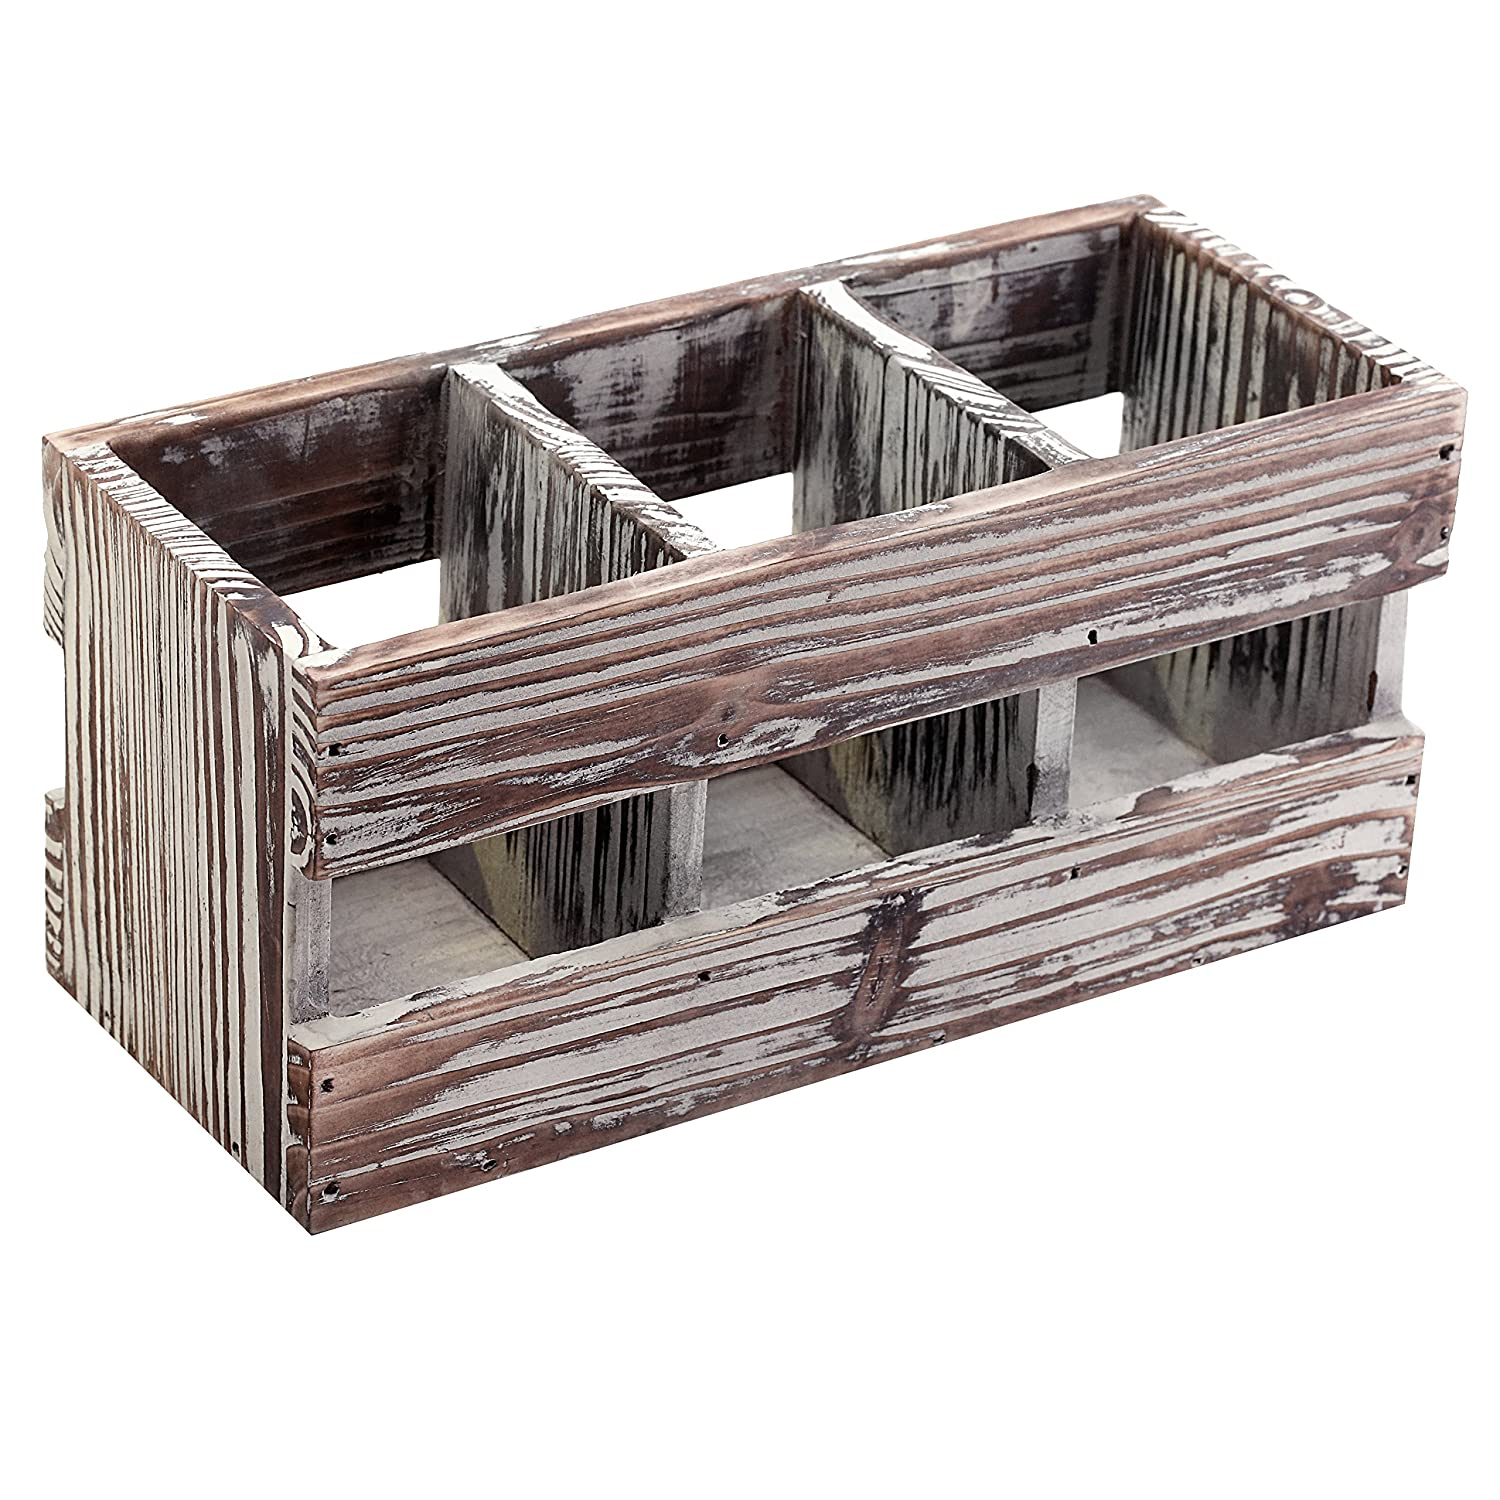 Compartment Torched Desktop Supplies Organizer Image 1